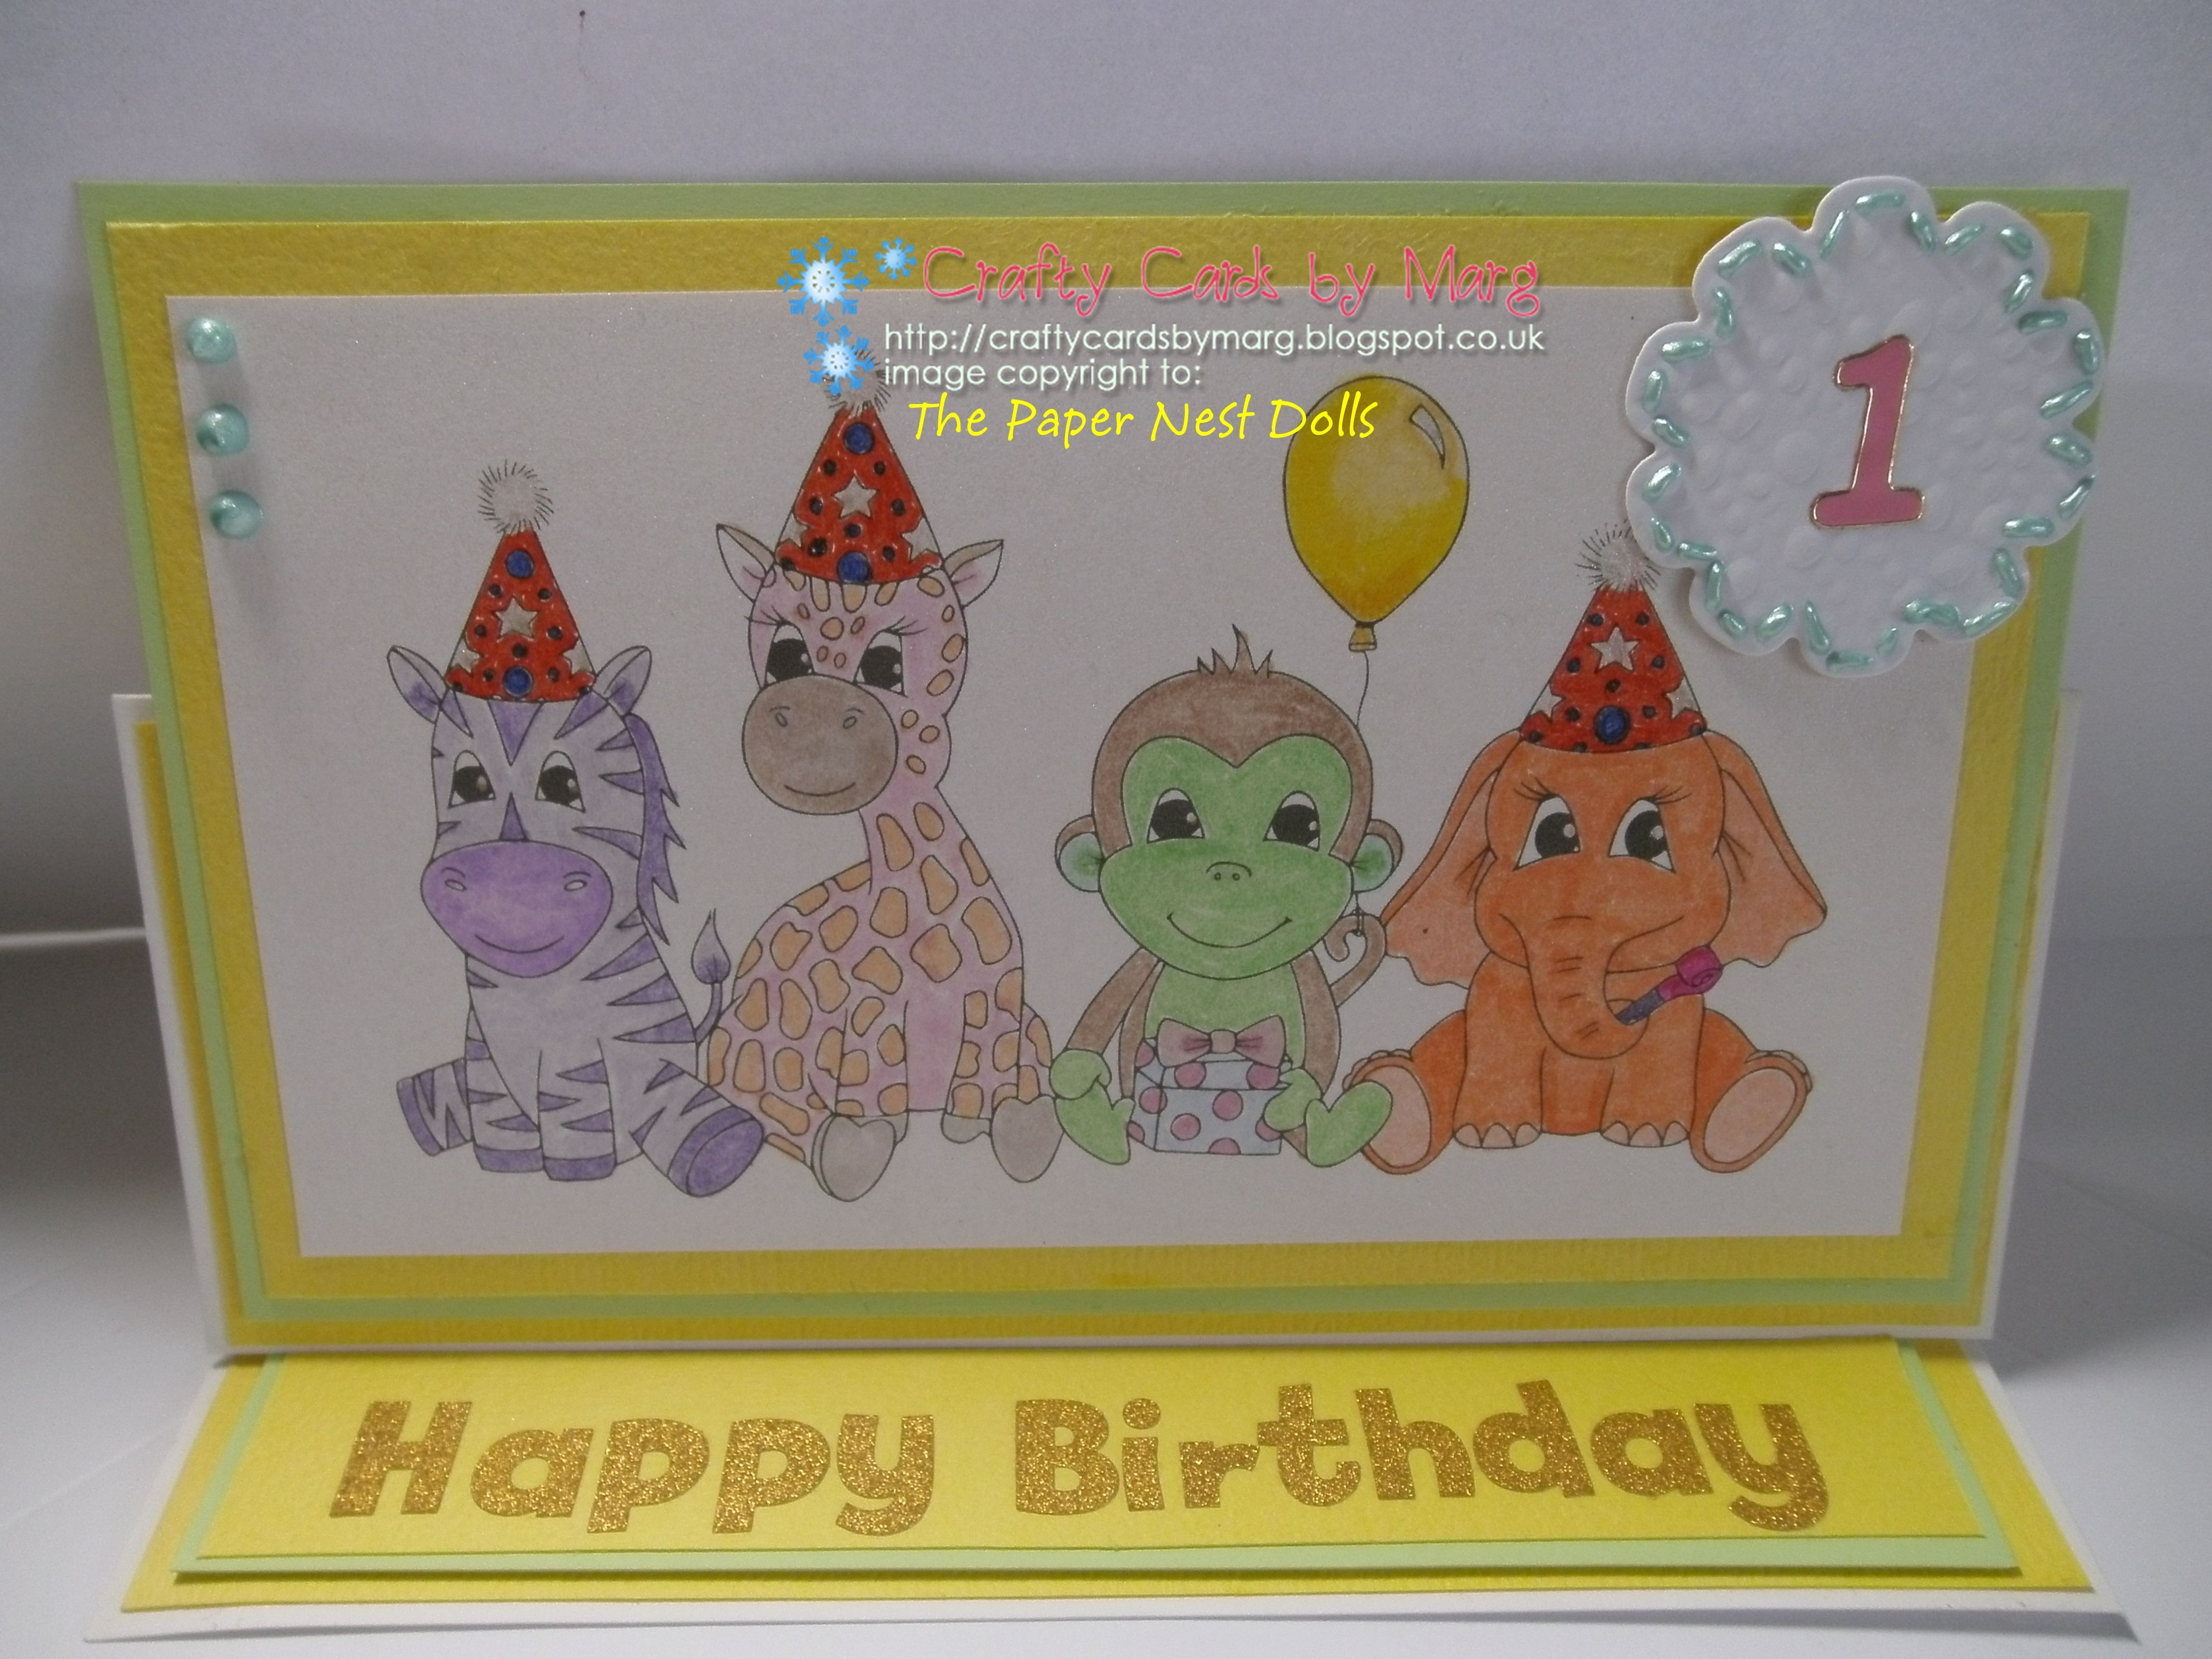 A 1st Birthday card using a digi stamp from The Paper Nest Dolls (photo 1 of 2)